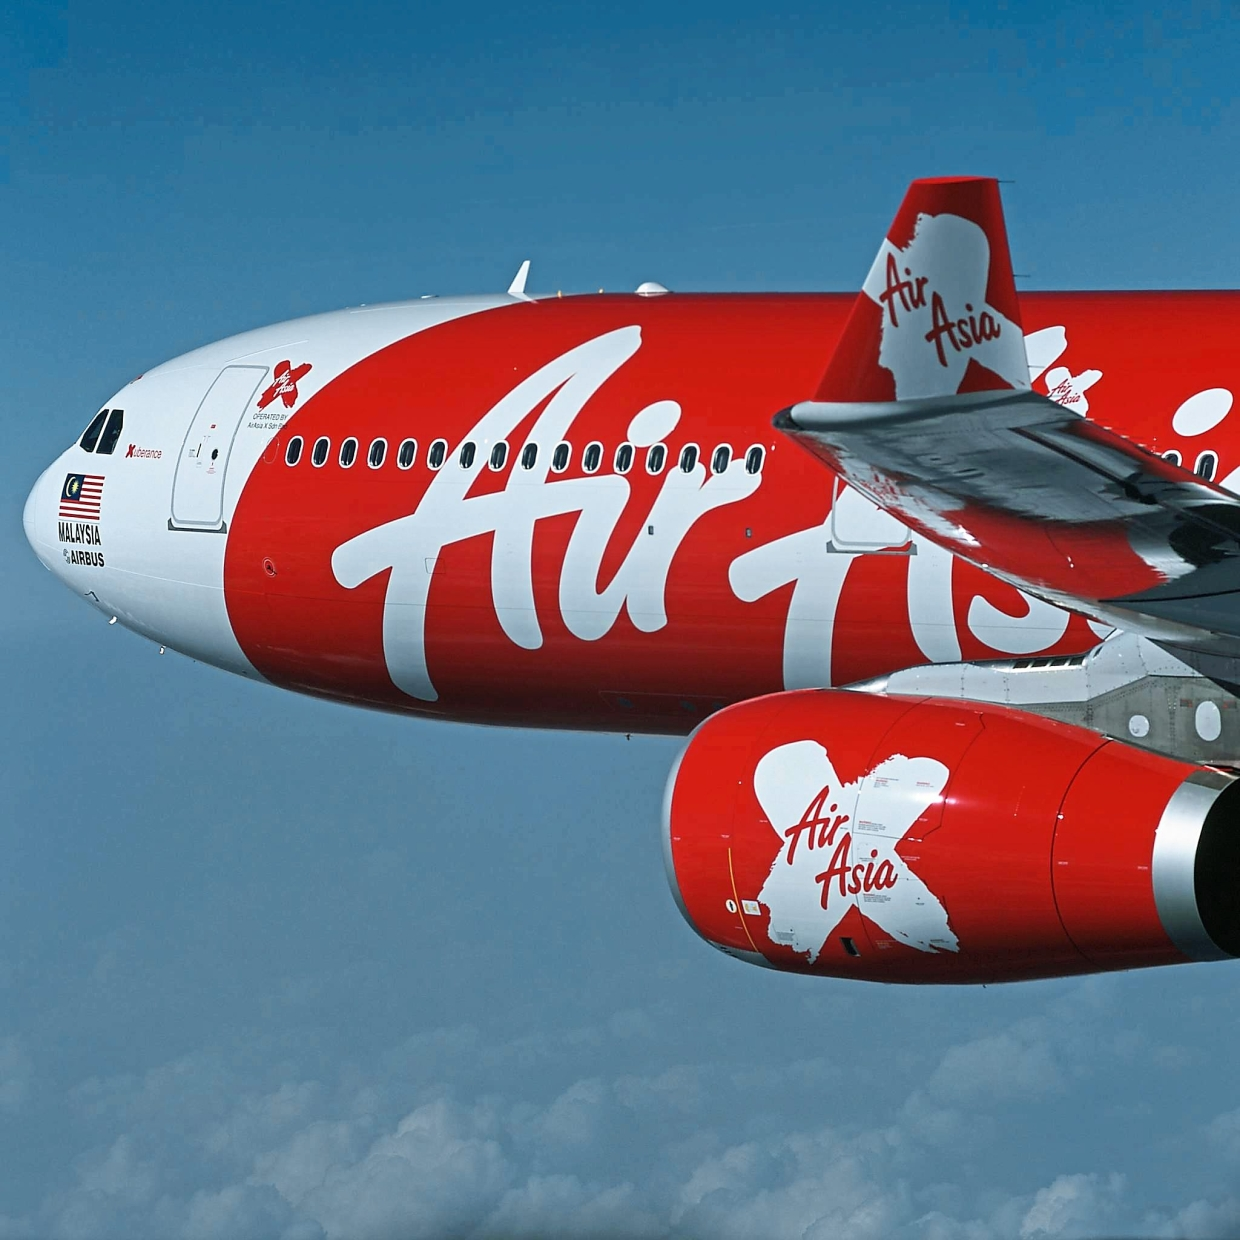 Tough times: Going into the second-half of 2019, AirAsia X foresees the operational environment to remain challenging against the backdrop of the global economy and the pressure on the ringgit.